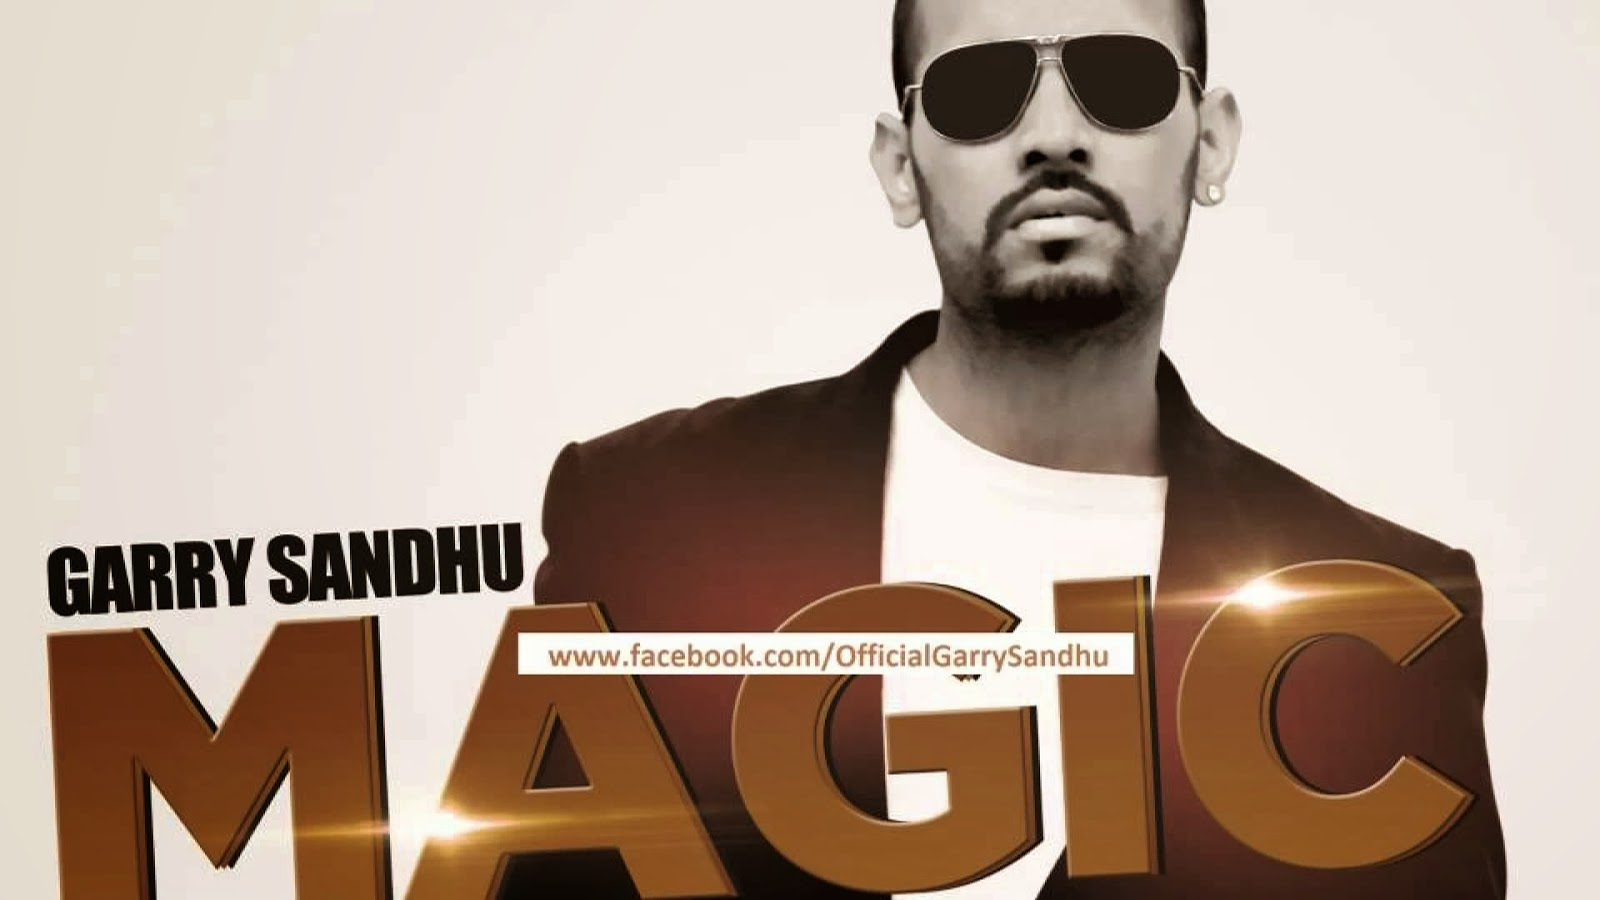 GARRY SANDHU MAGIC Album All Songs LYRICS & VIDEOS